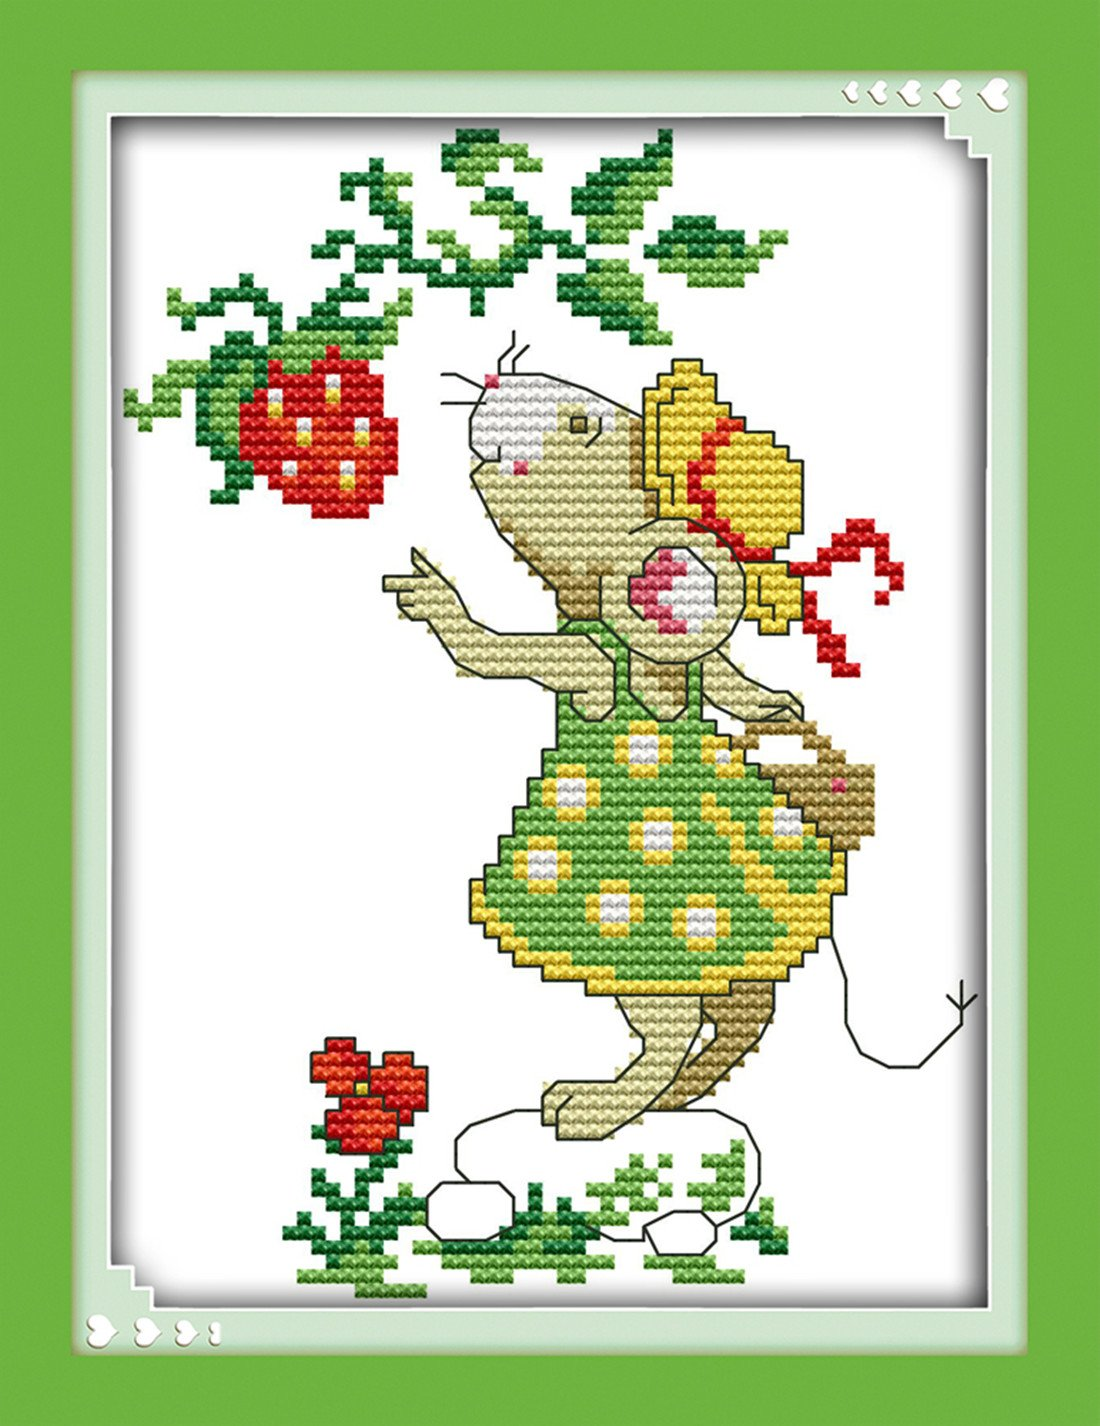 "eGoodn Stamped Cross Stitch Kits Printed Pattern - Flower Mouse, 11CT Fabric Measures 13"" By 11.4"", Wall Decor Art Embroidery Cross-Stitching, No Frame ED33"